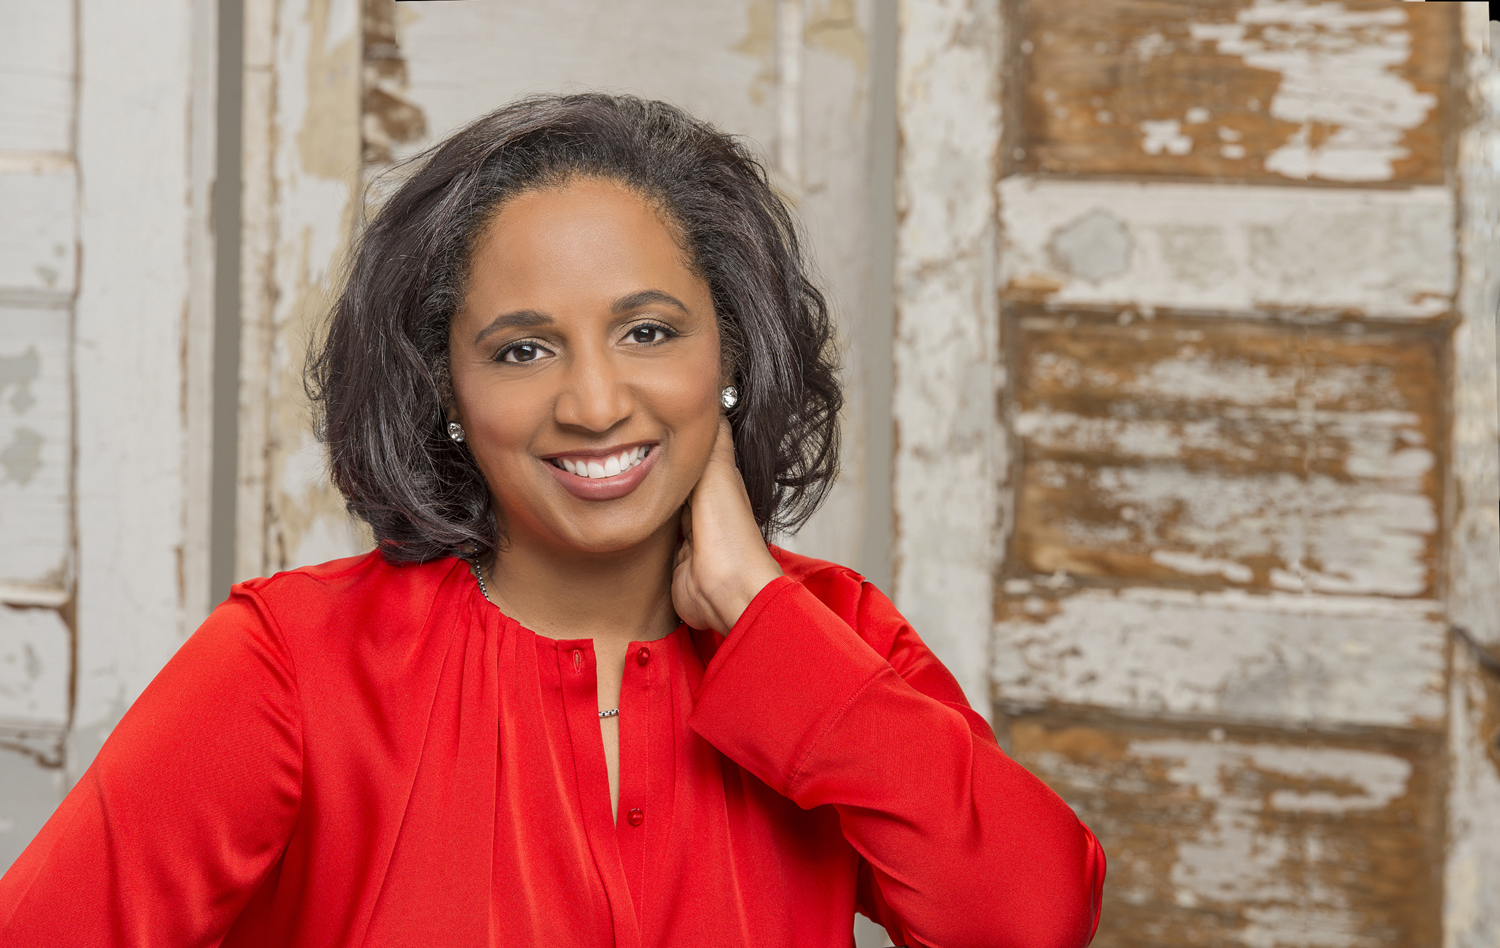 """Author and historian Daina Ramey Berry came to Pitt to discuss her new book, """"A Black Woman's History of the United States,"""" on Tuesday."""